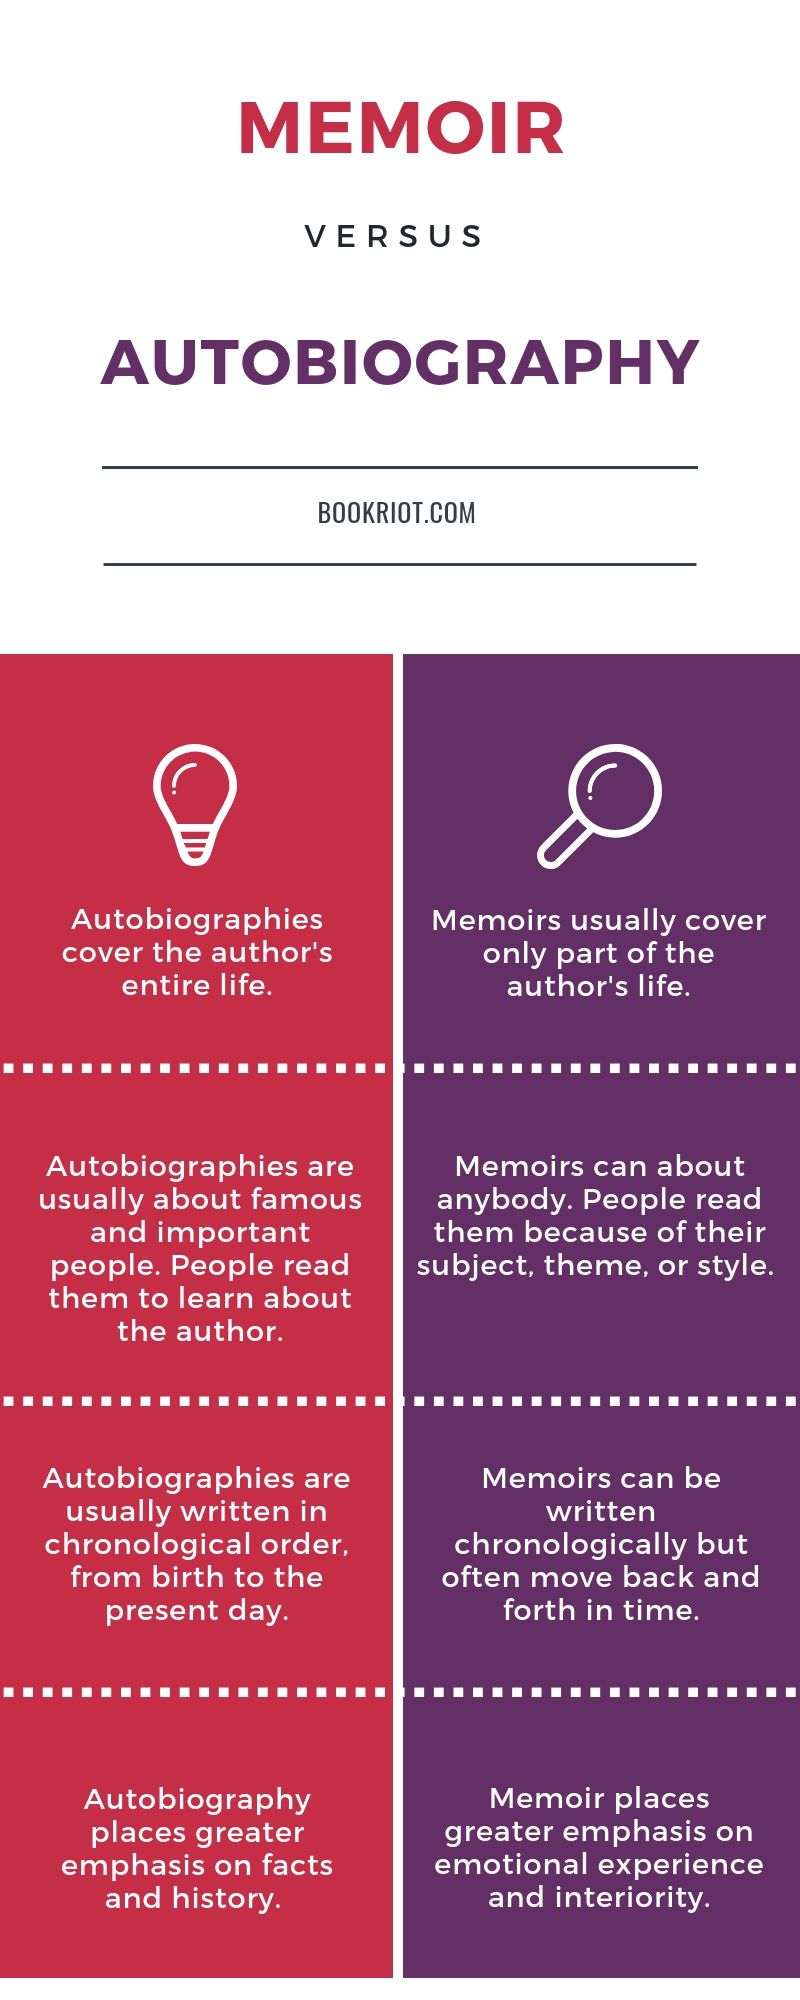 Difference Between Memoir and Autobiography infographic